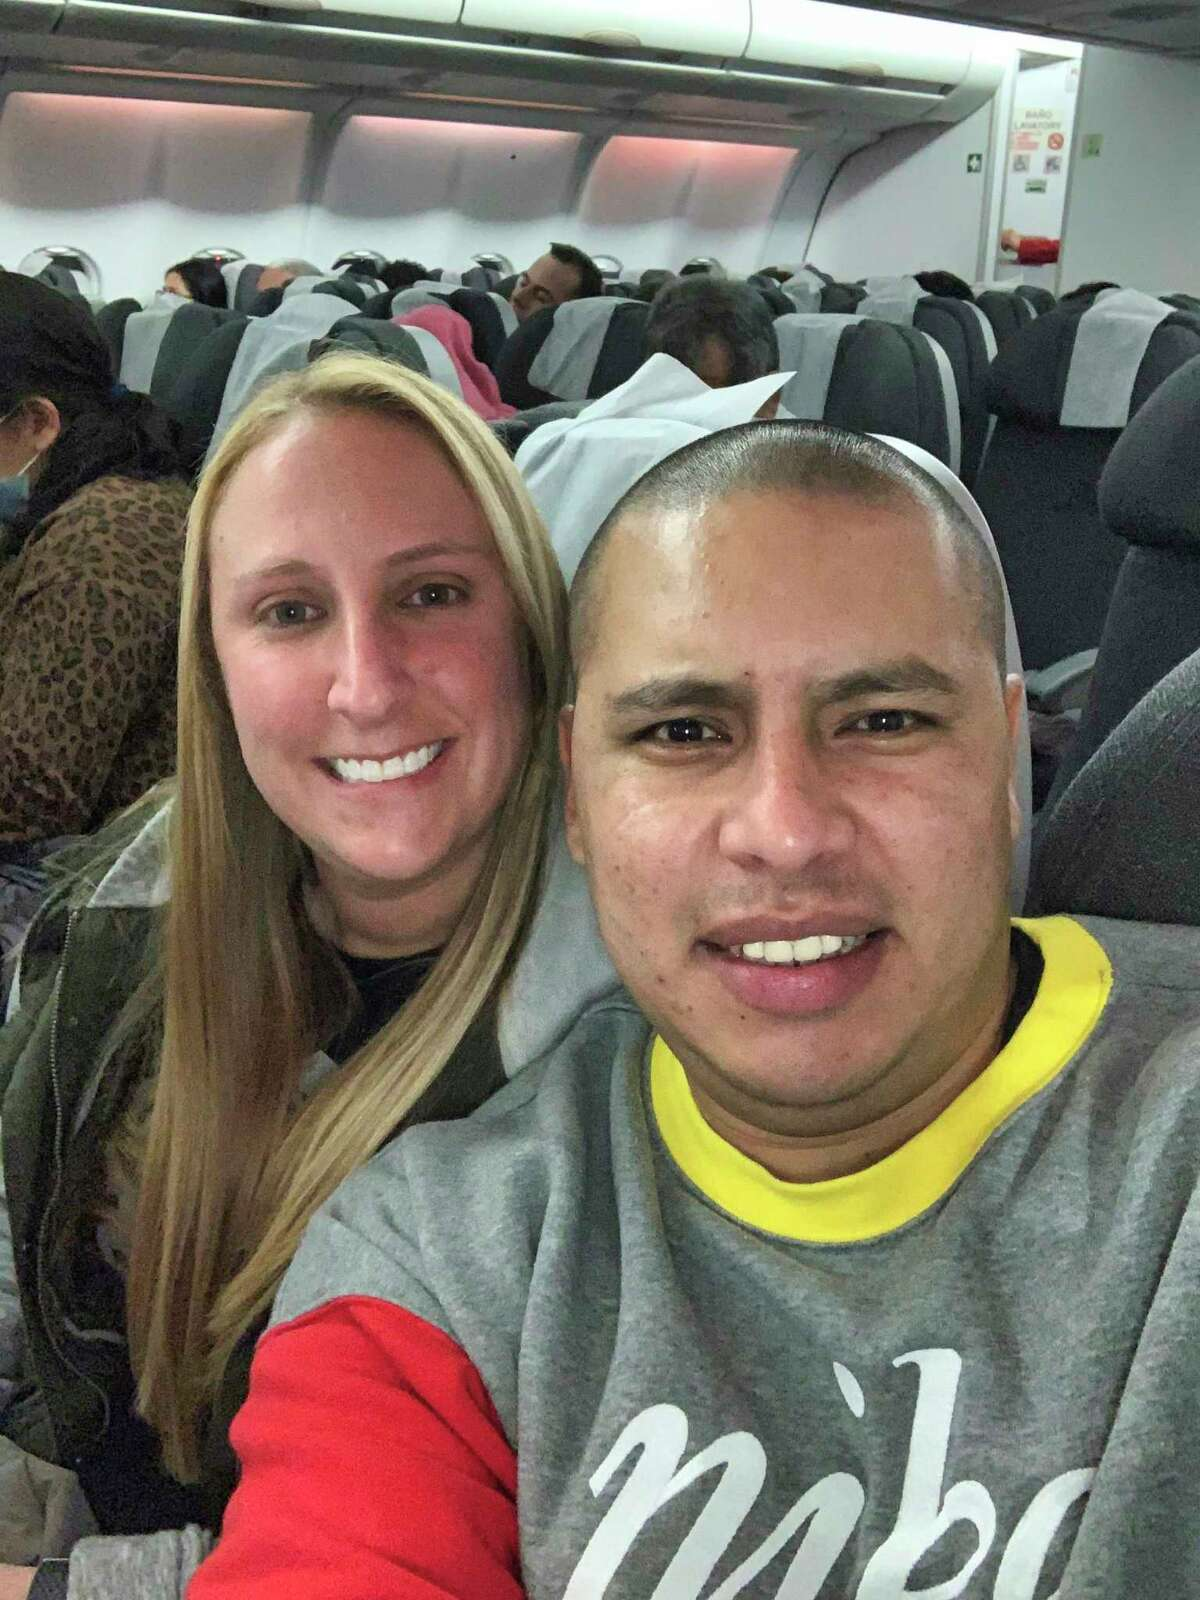 Carlos Salinas and his fiancee Rachel, of Valley Stream, N.Y., are among the more than 2,500 Americans stuck in Peru due to coronavirus as of Monday March 23, 2020. (photo provided)